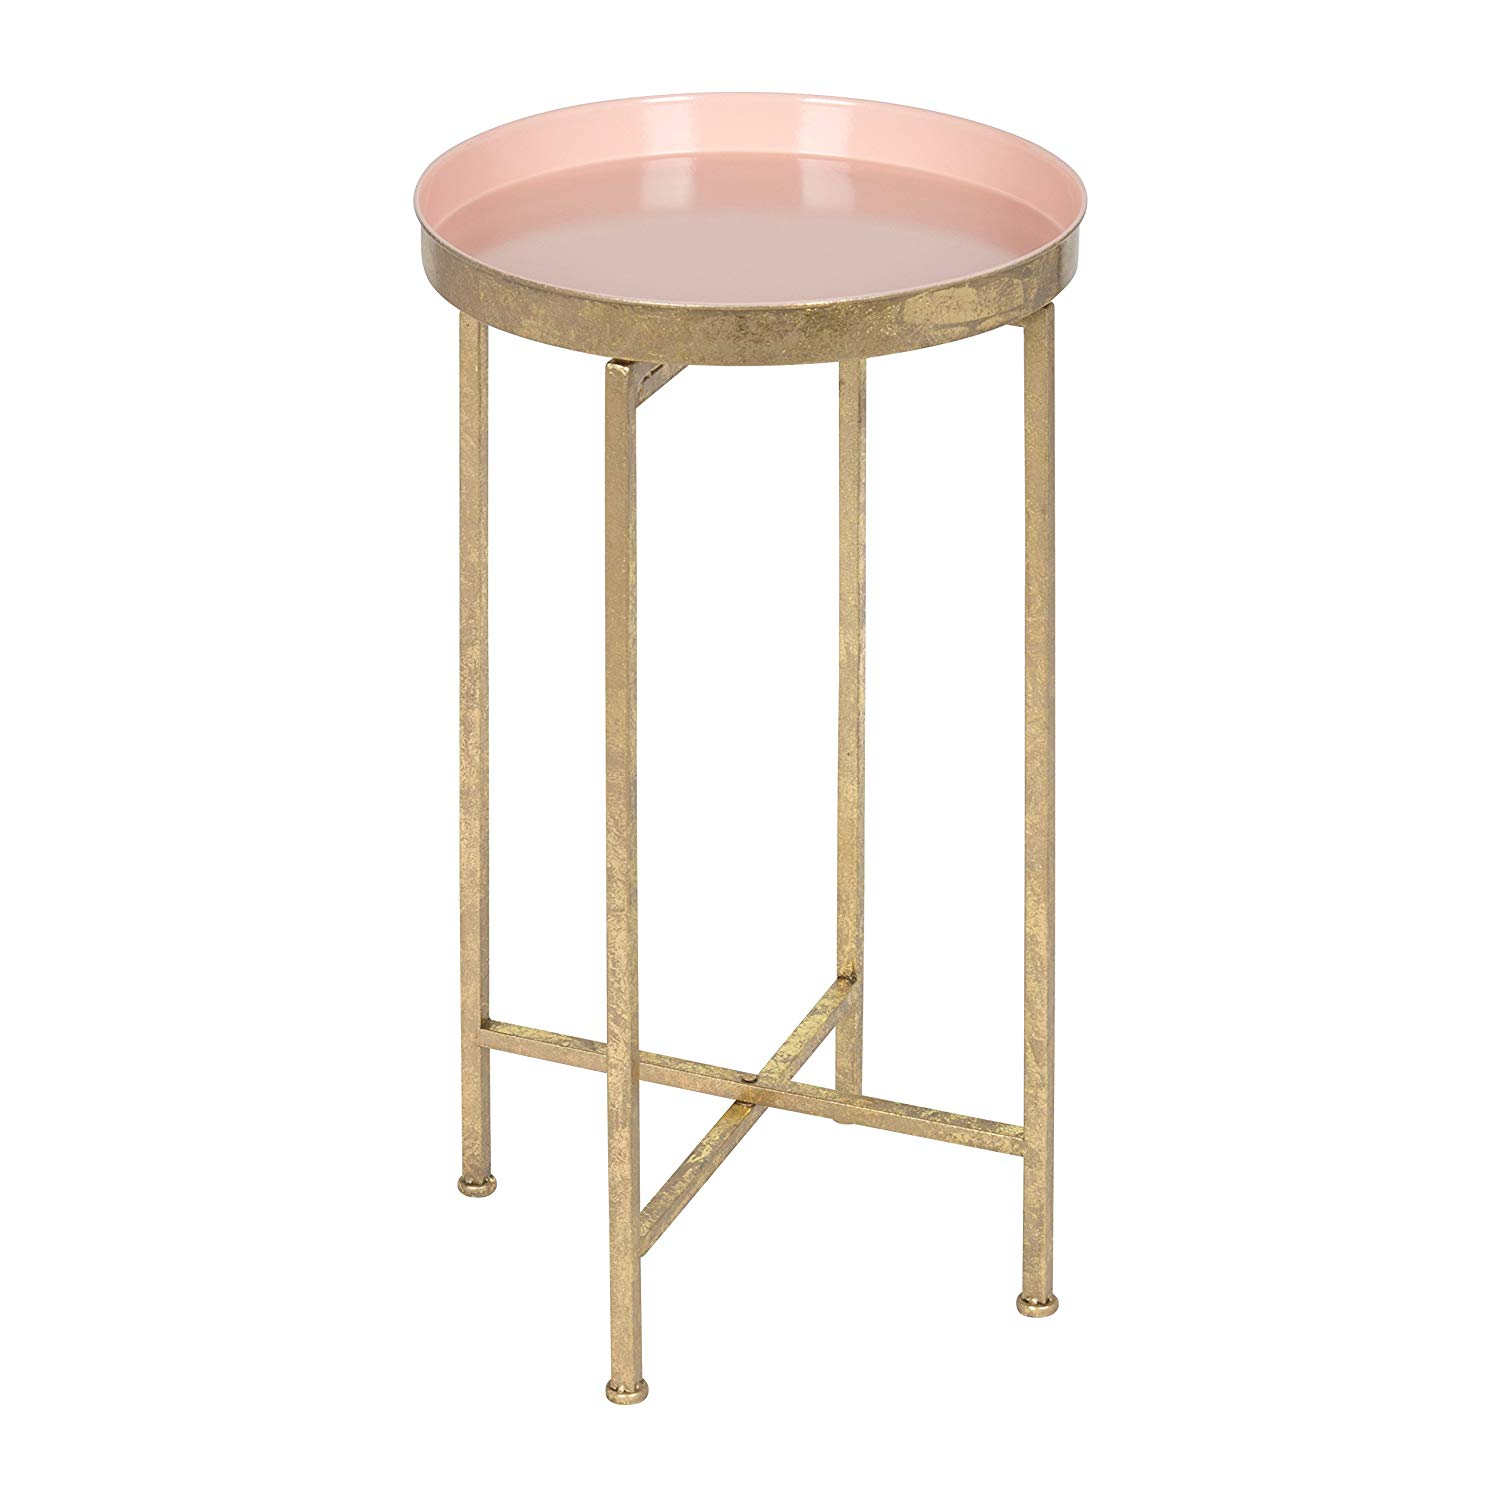 kate and laurel celia round metal foldable tray gold accent table pink home kitchen kmart marble dining base only target chaise small bedroom chairs sets extendable farmhouse